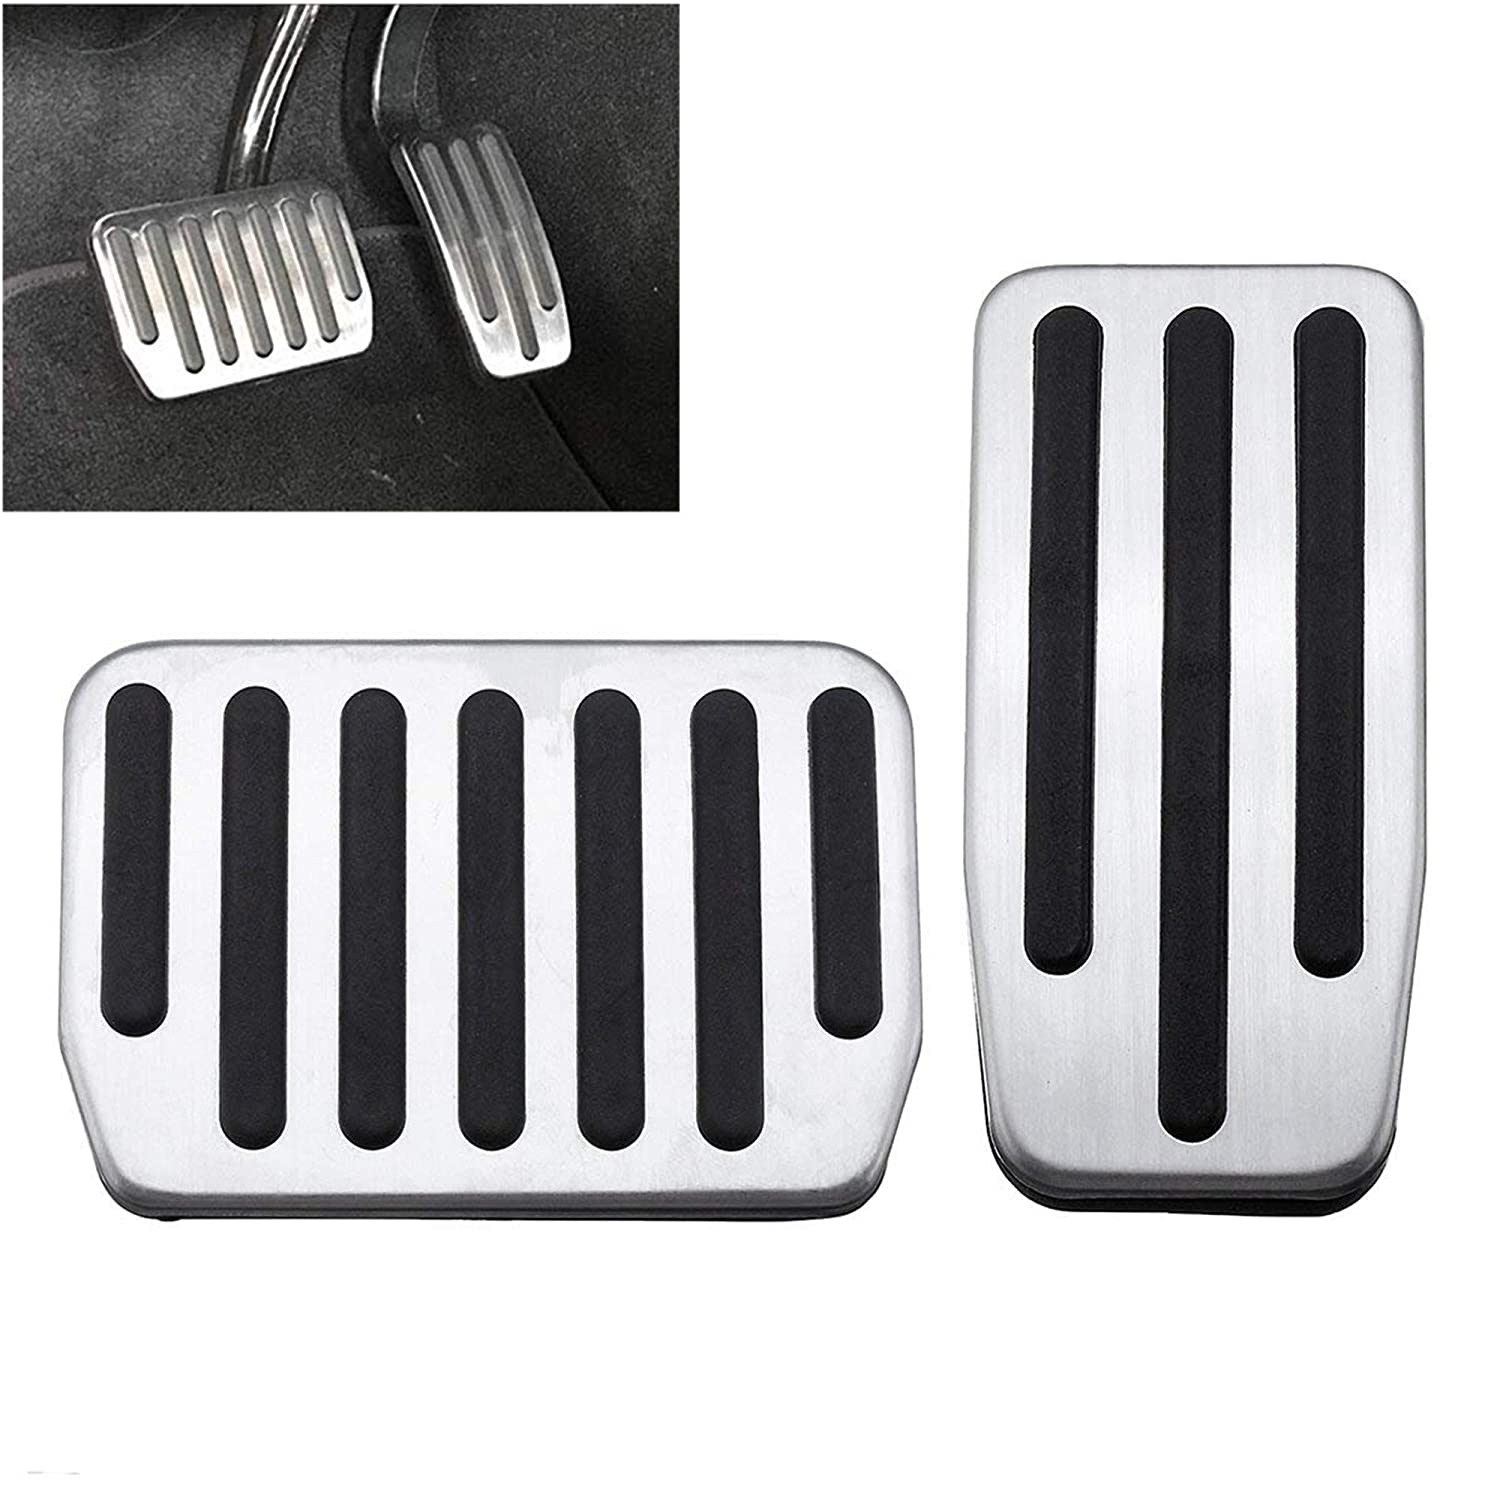 Accelerator and Brake Pedal-Cover Anti Slip Gas Brake Pedal Foot Pedal Pads Auto Aluminum Pedal Covers Foot Pads with Rubber Pull Tabs Tesla Model3 Pedal Cover ALLPE Tesla Model 3 Accessories